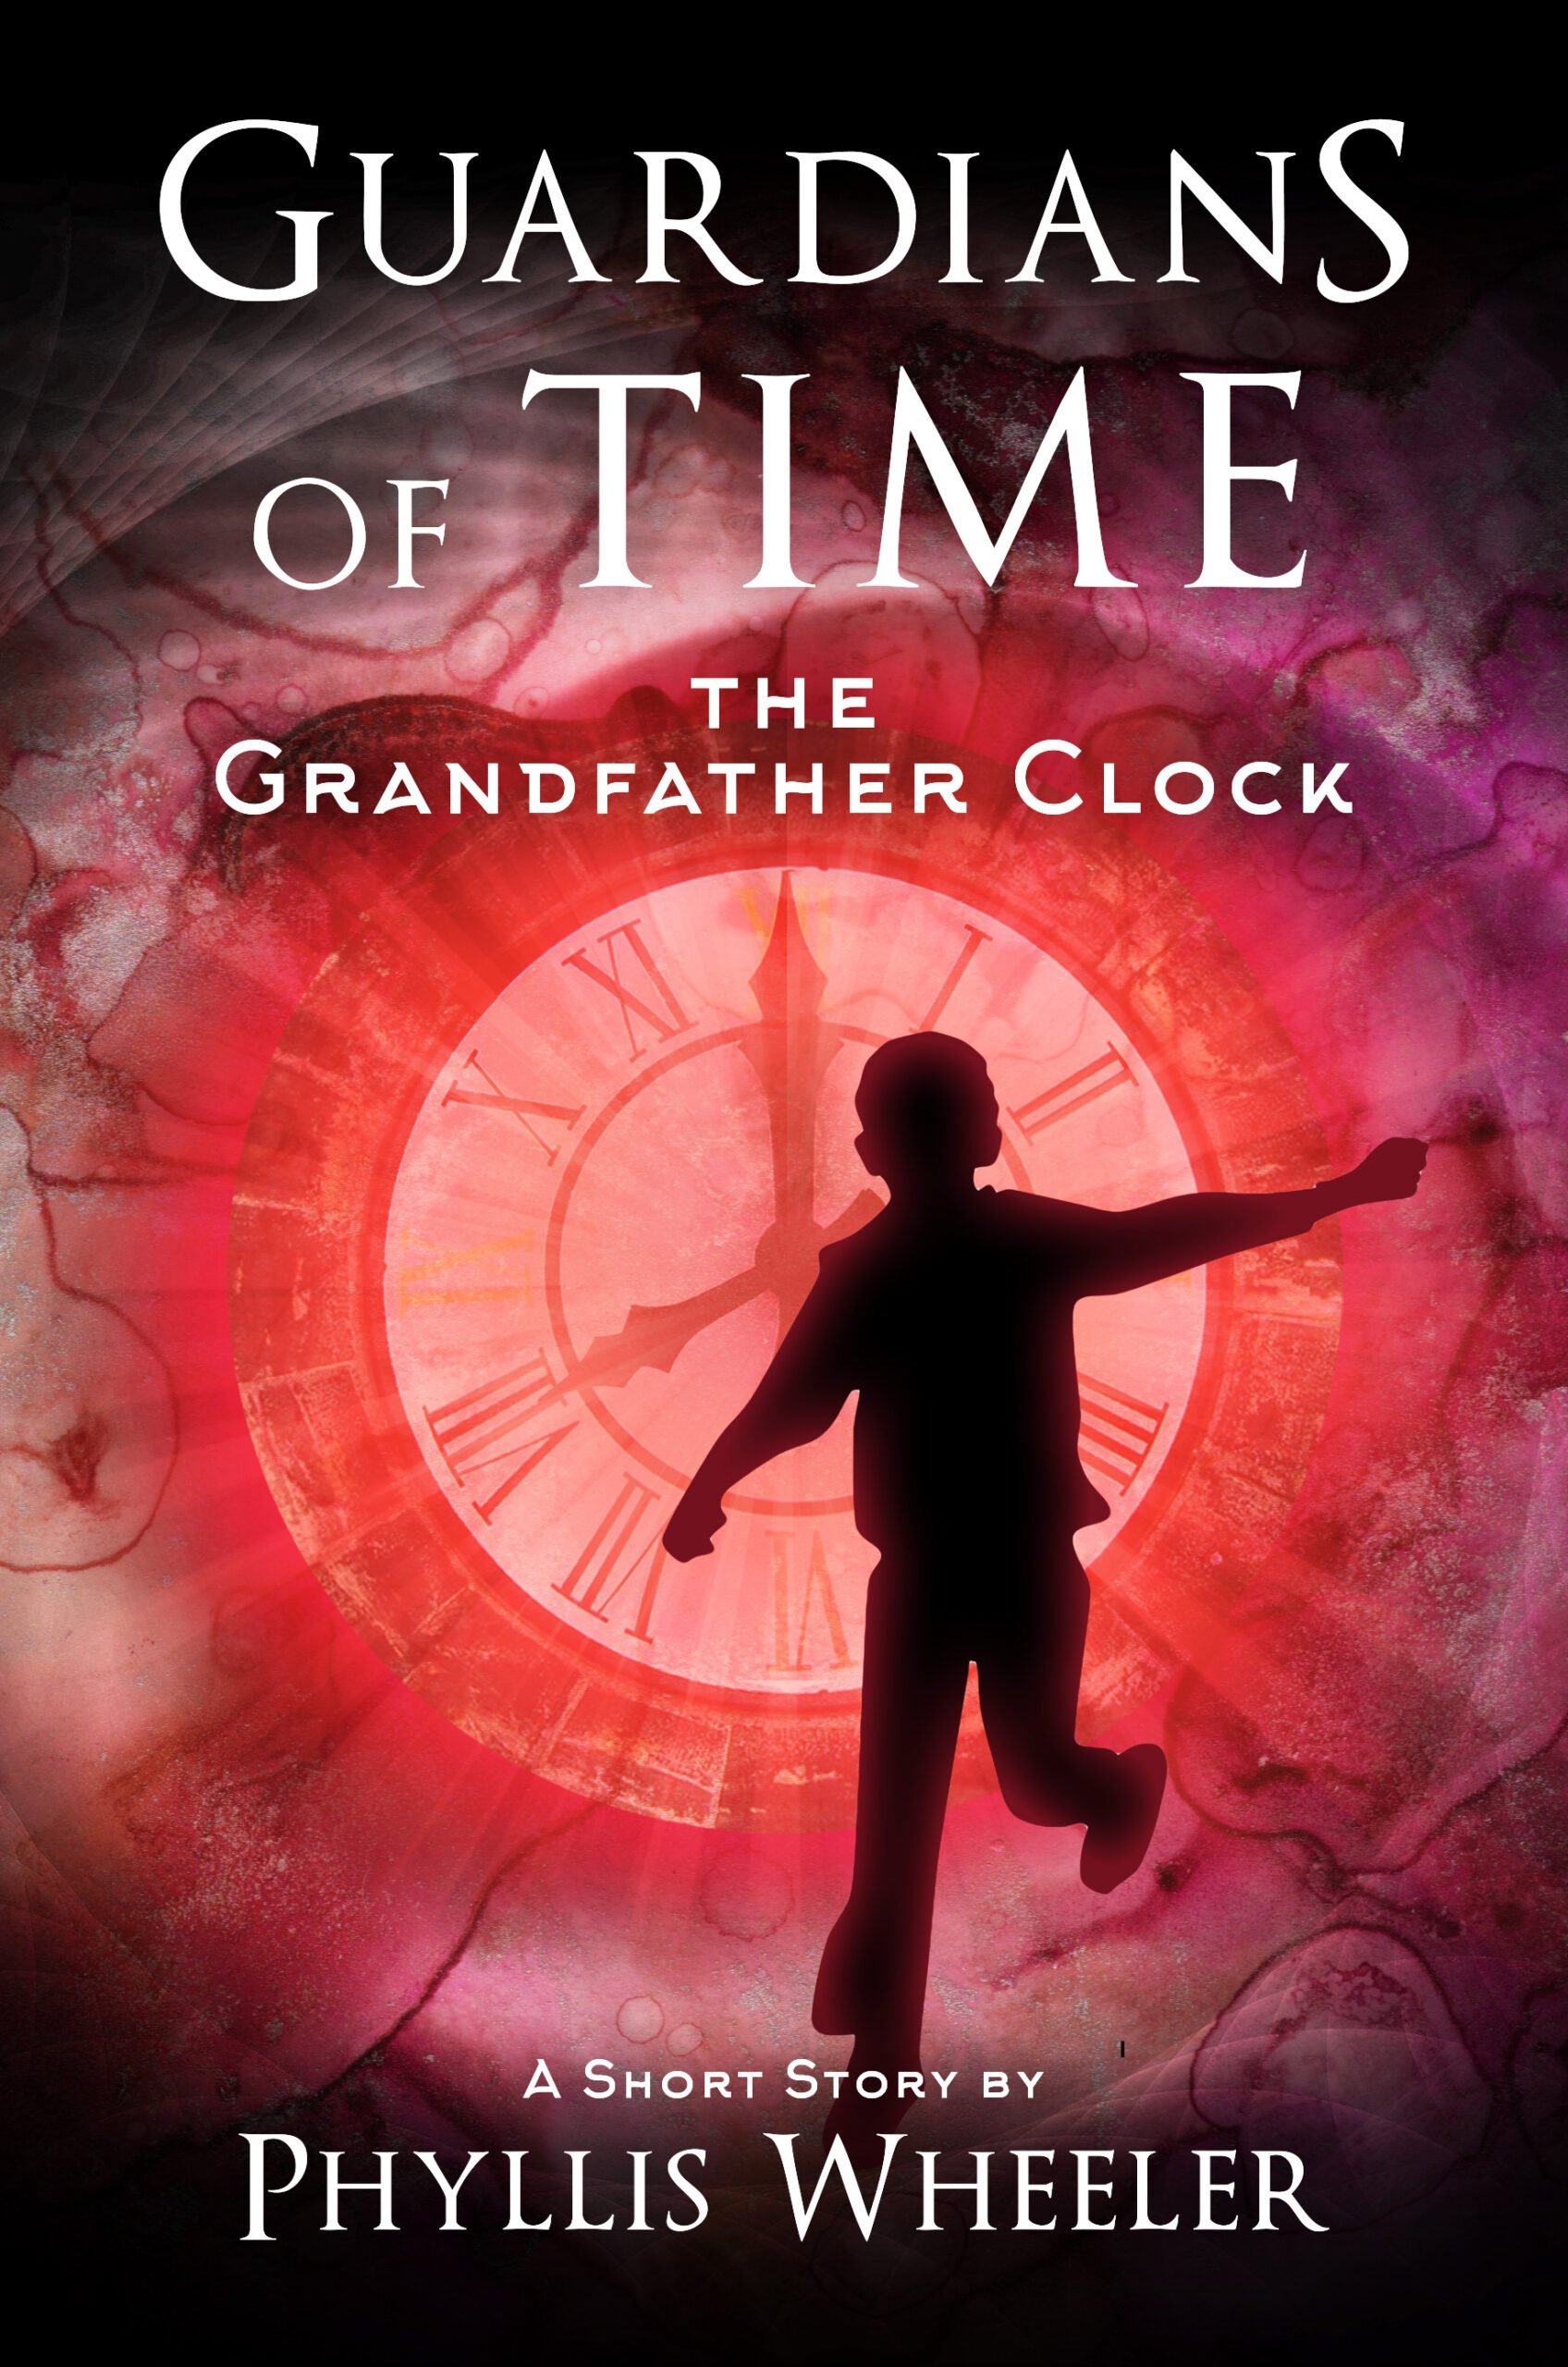 The Grandfather Clock by Phyllis Wheeler book cover